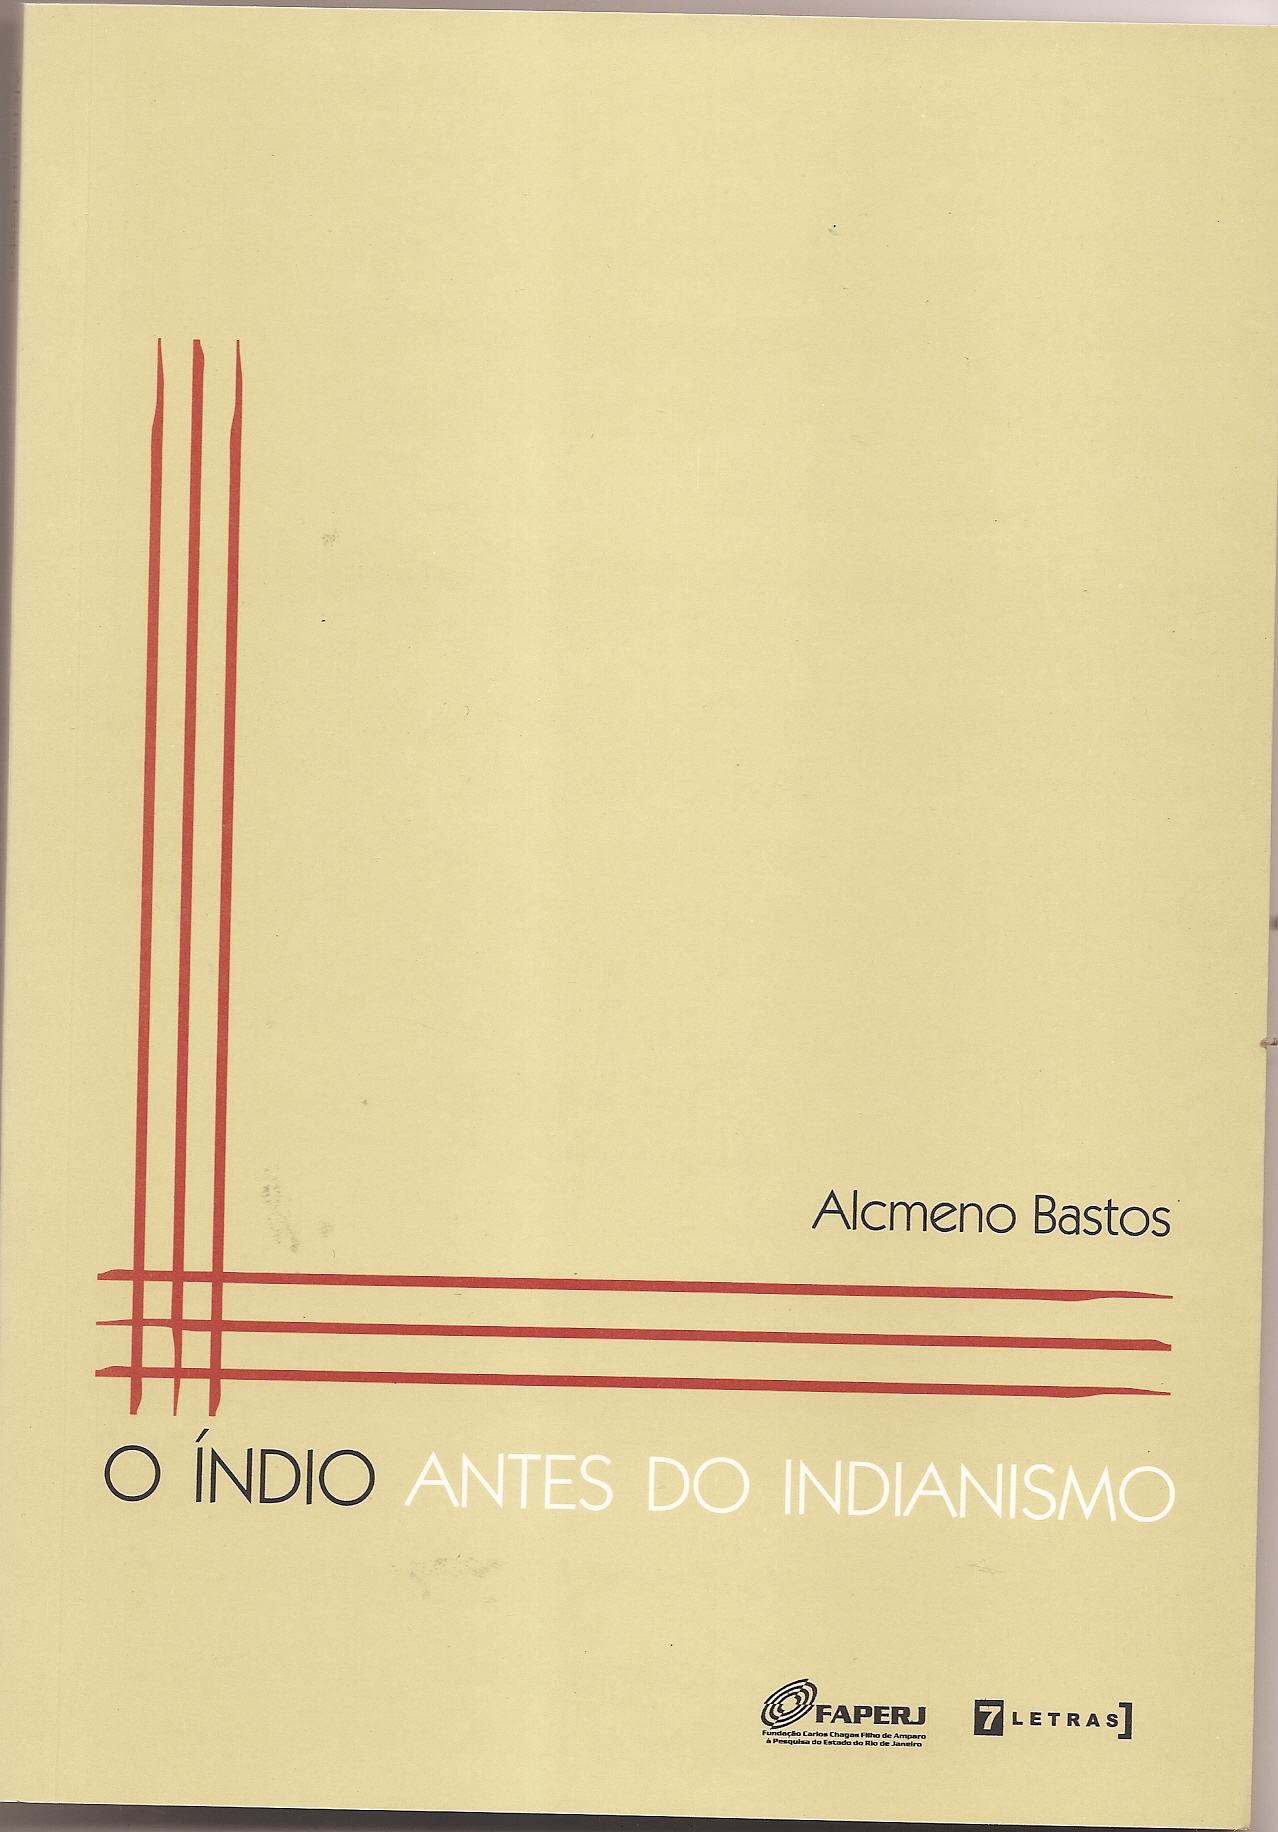 O índio antes do indianismo